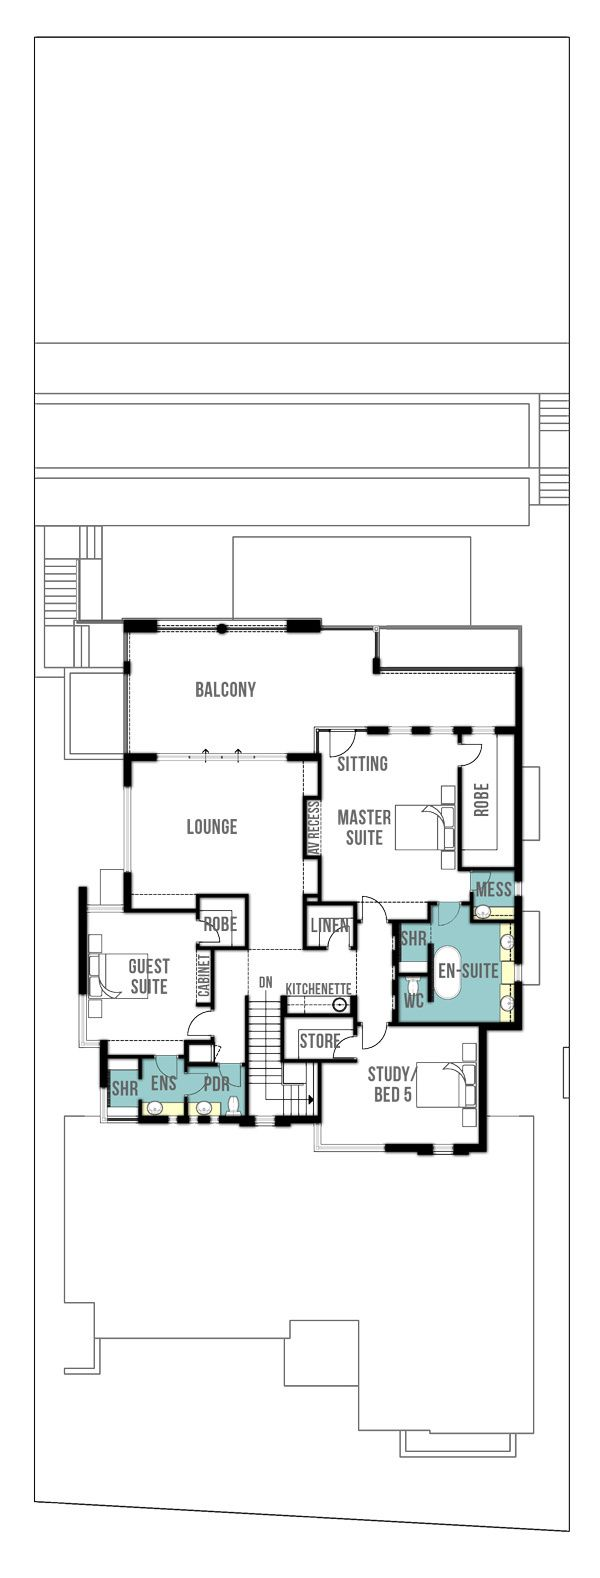 286 best house plans images on pinterest architecture house reef undercroft canal home design plans first floor by boyd design perth